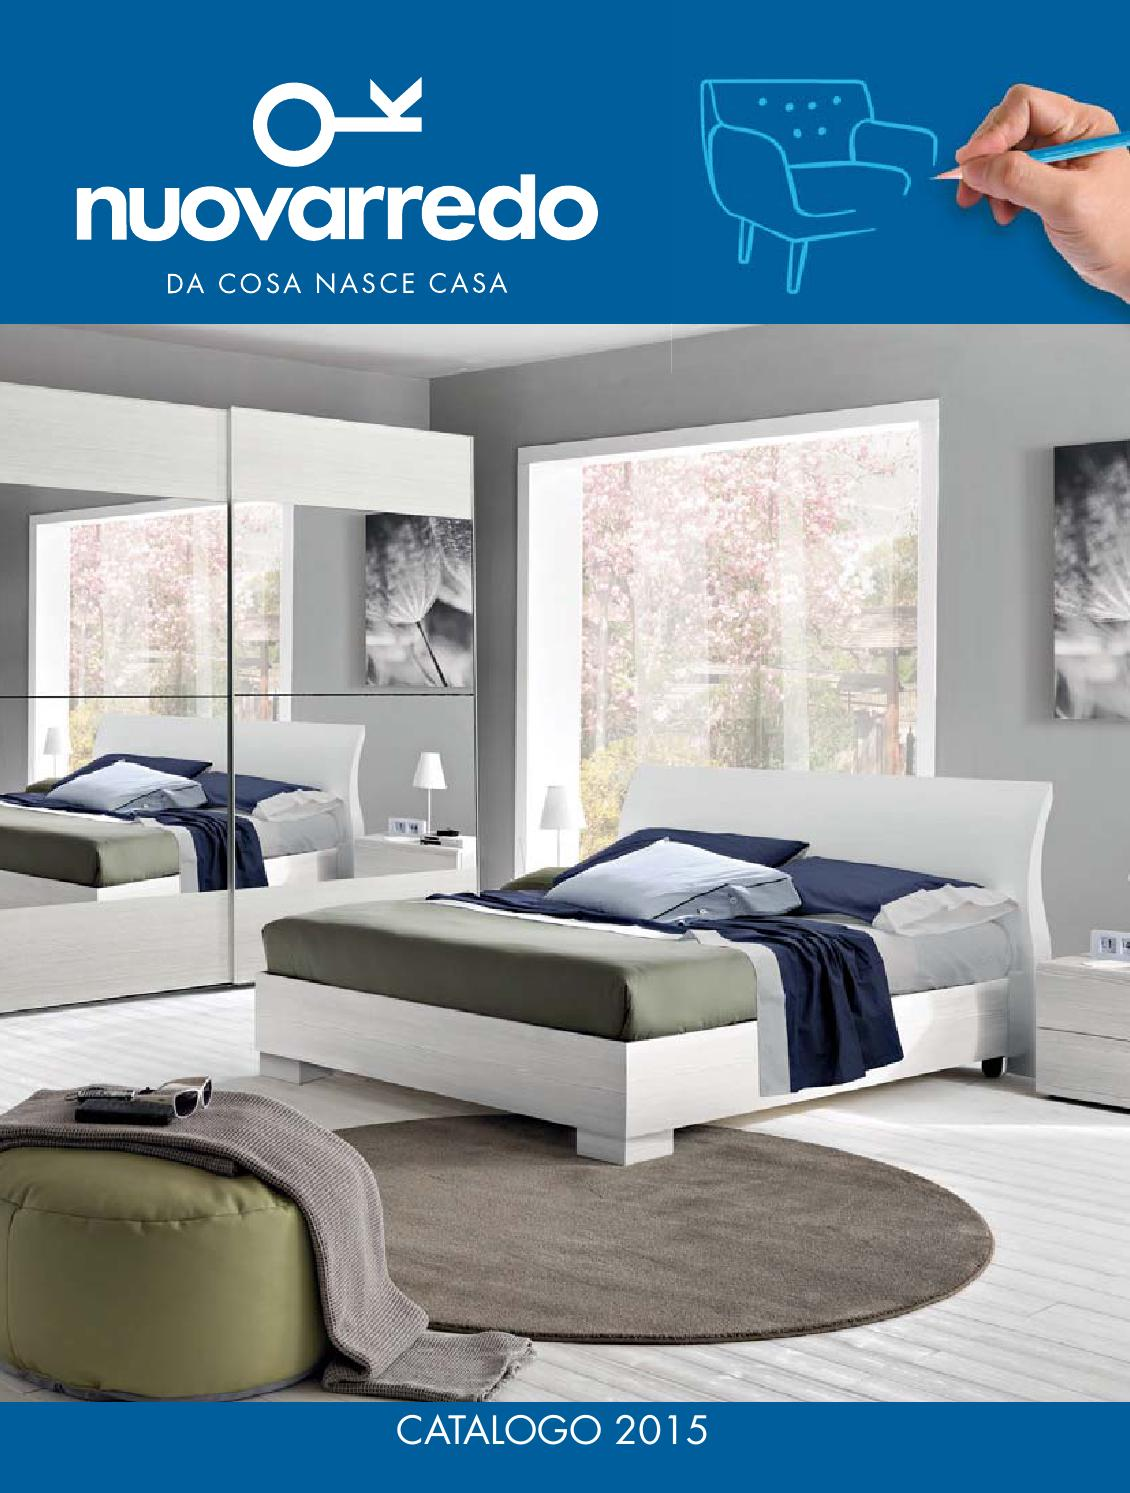 Nuovarredo catalogo 2015 by Mobilpro - issuu